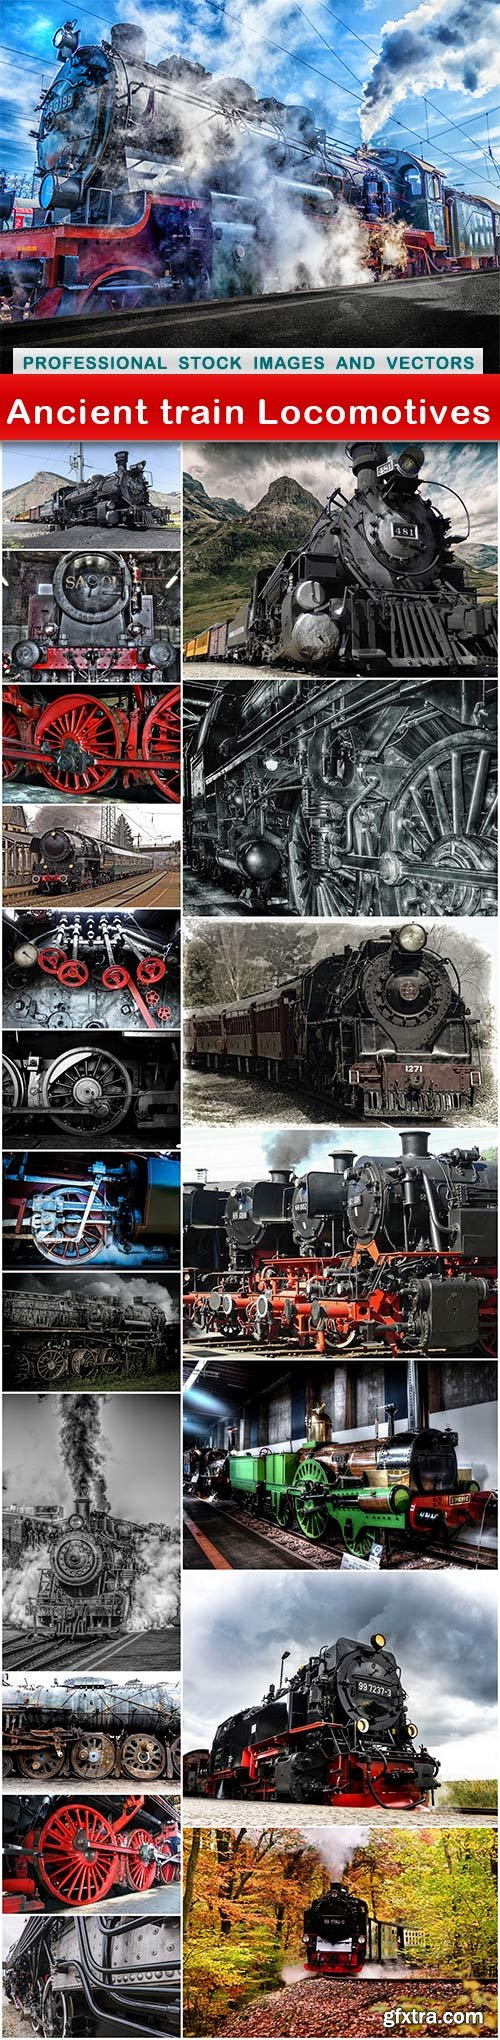 Ancient train Locomotives - 21 UHQ JPEG